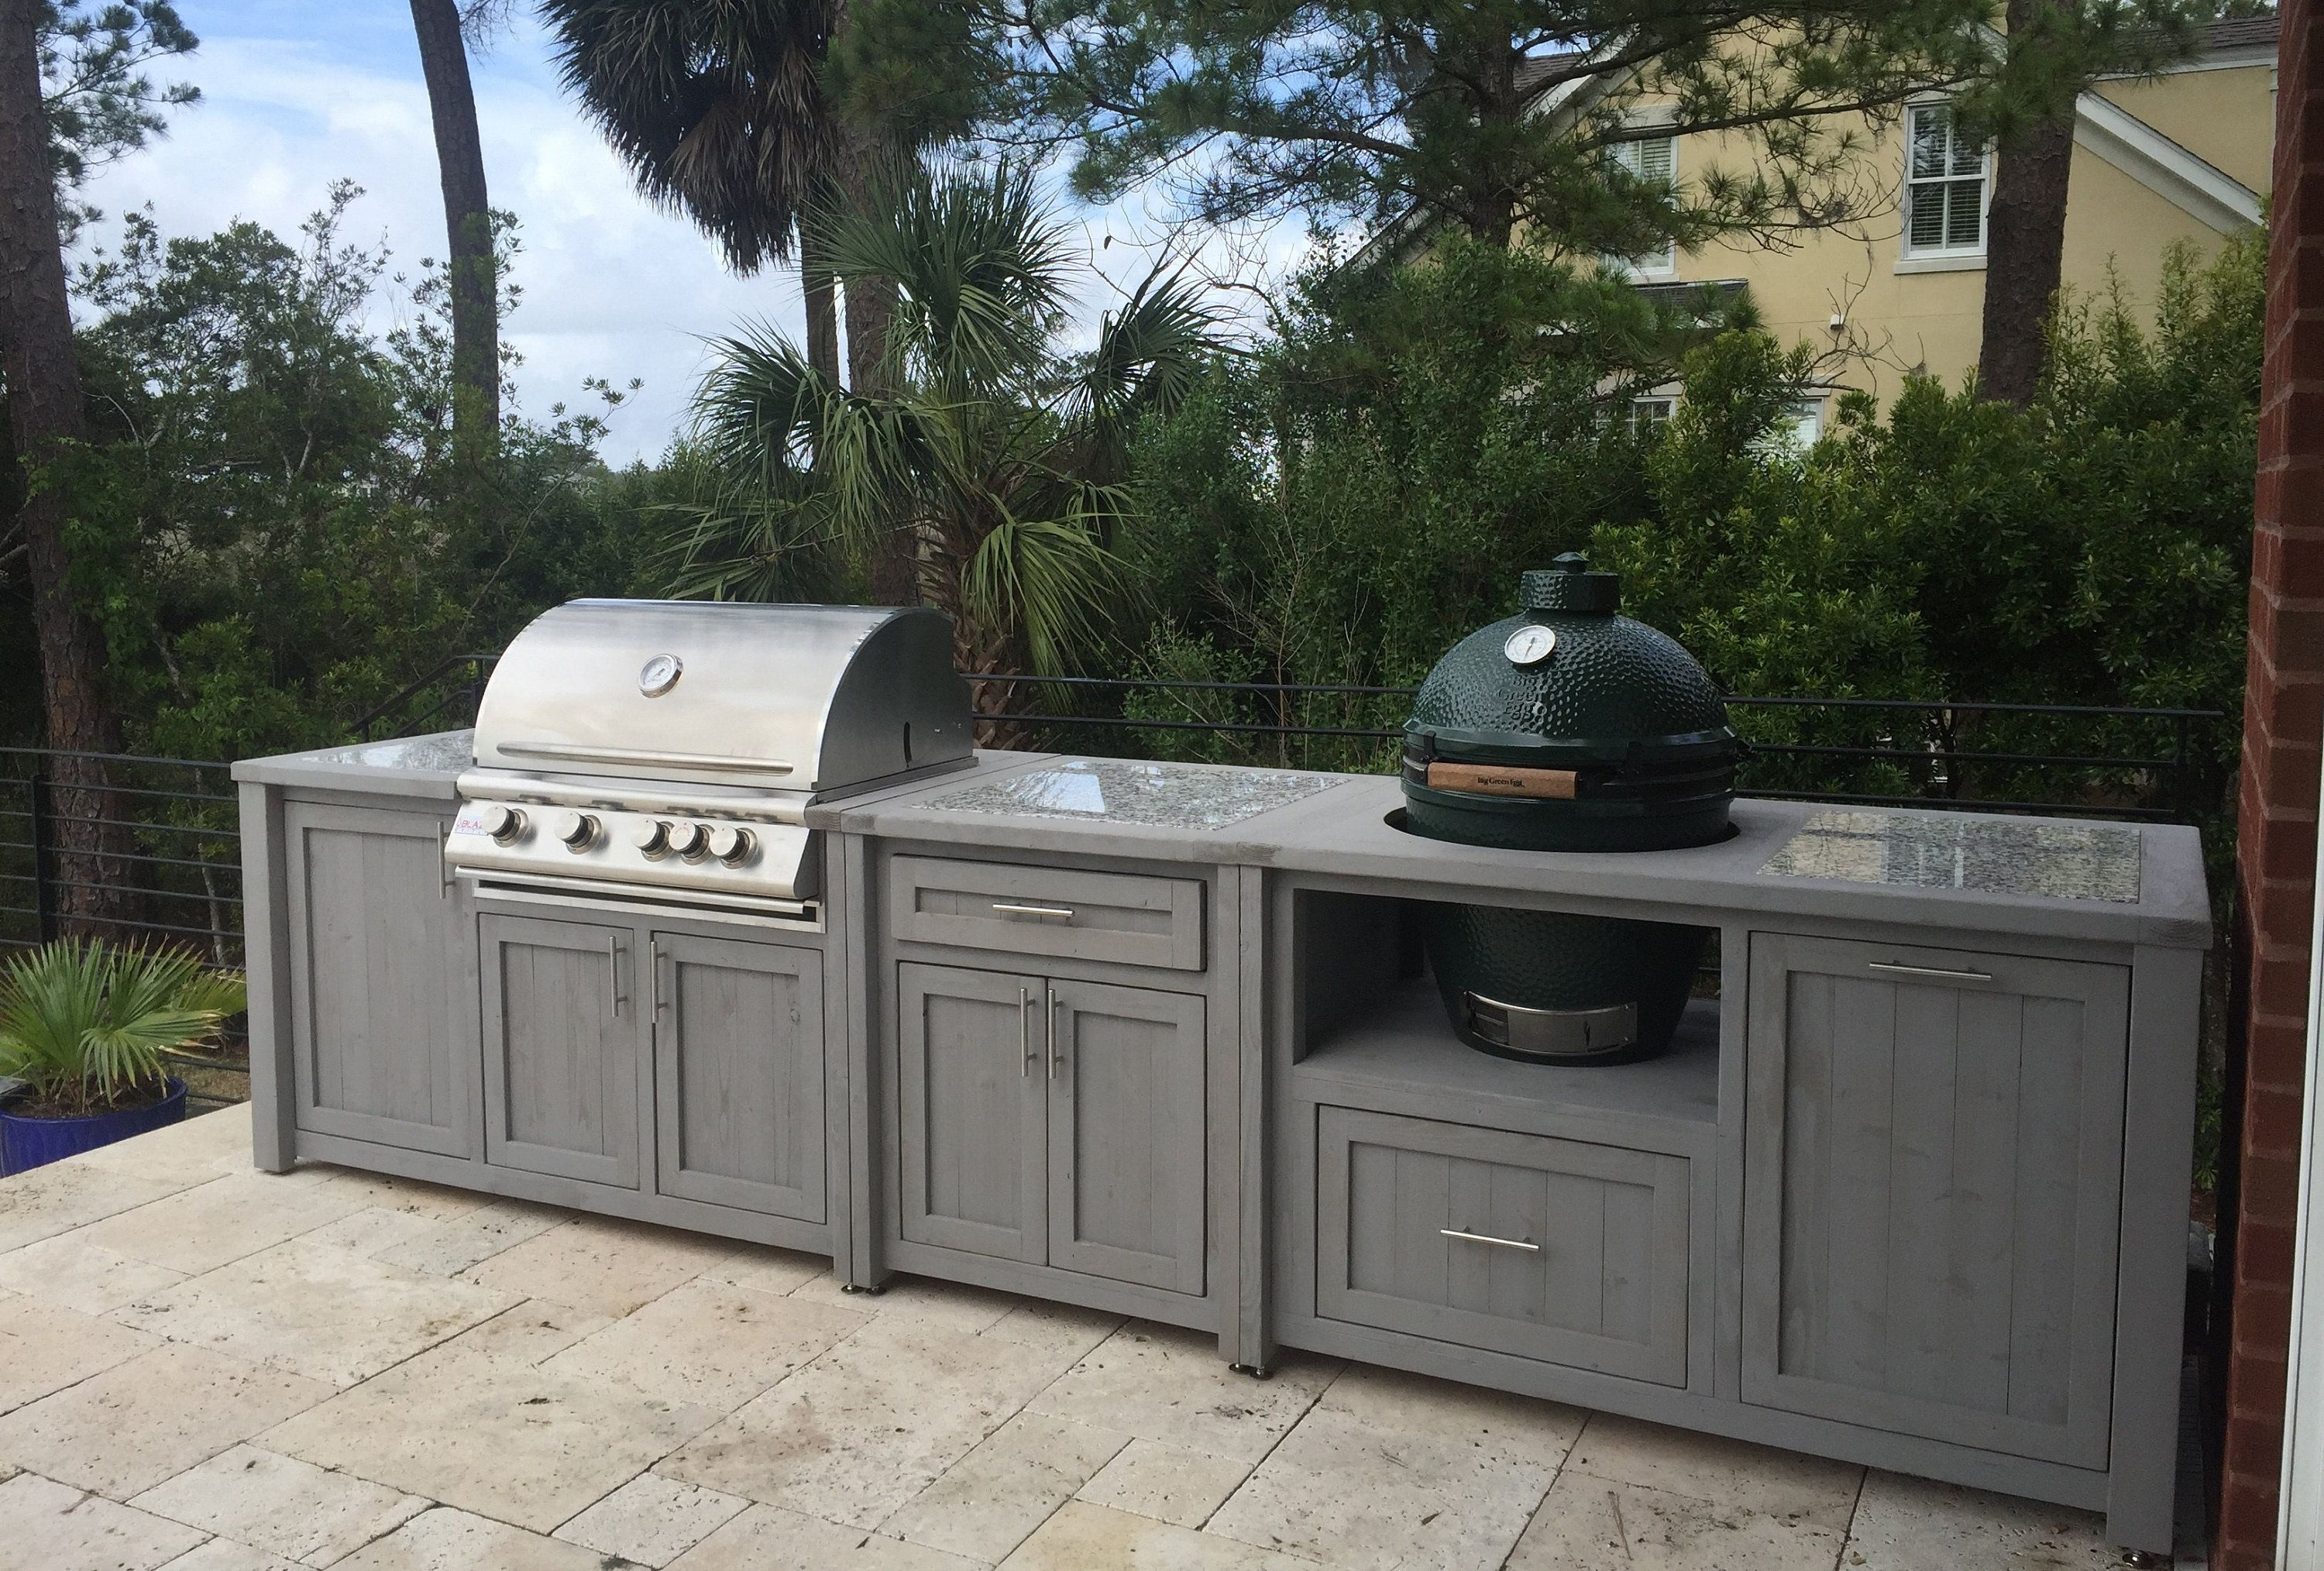 Outdoor Kitchens Mobile Grill Islands Dual Grill Tables Etsy Grill Table Diy Outdoor Kitchen Kitchen Grill